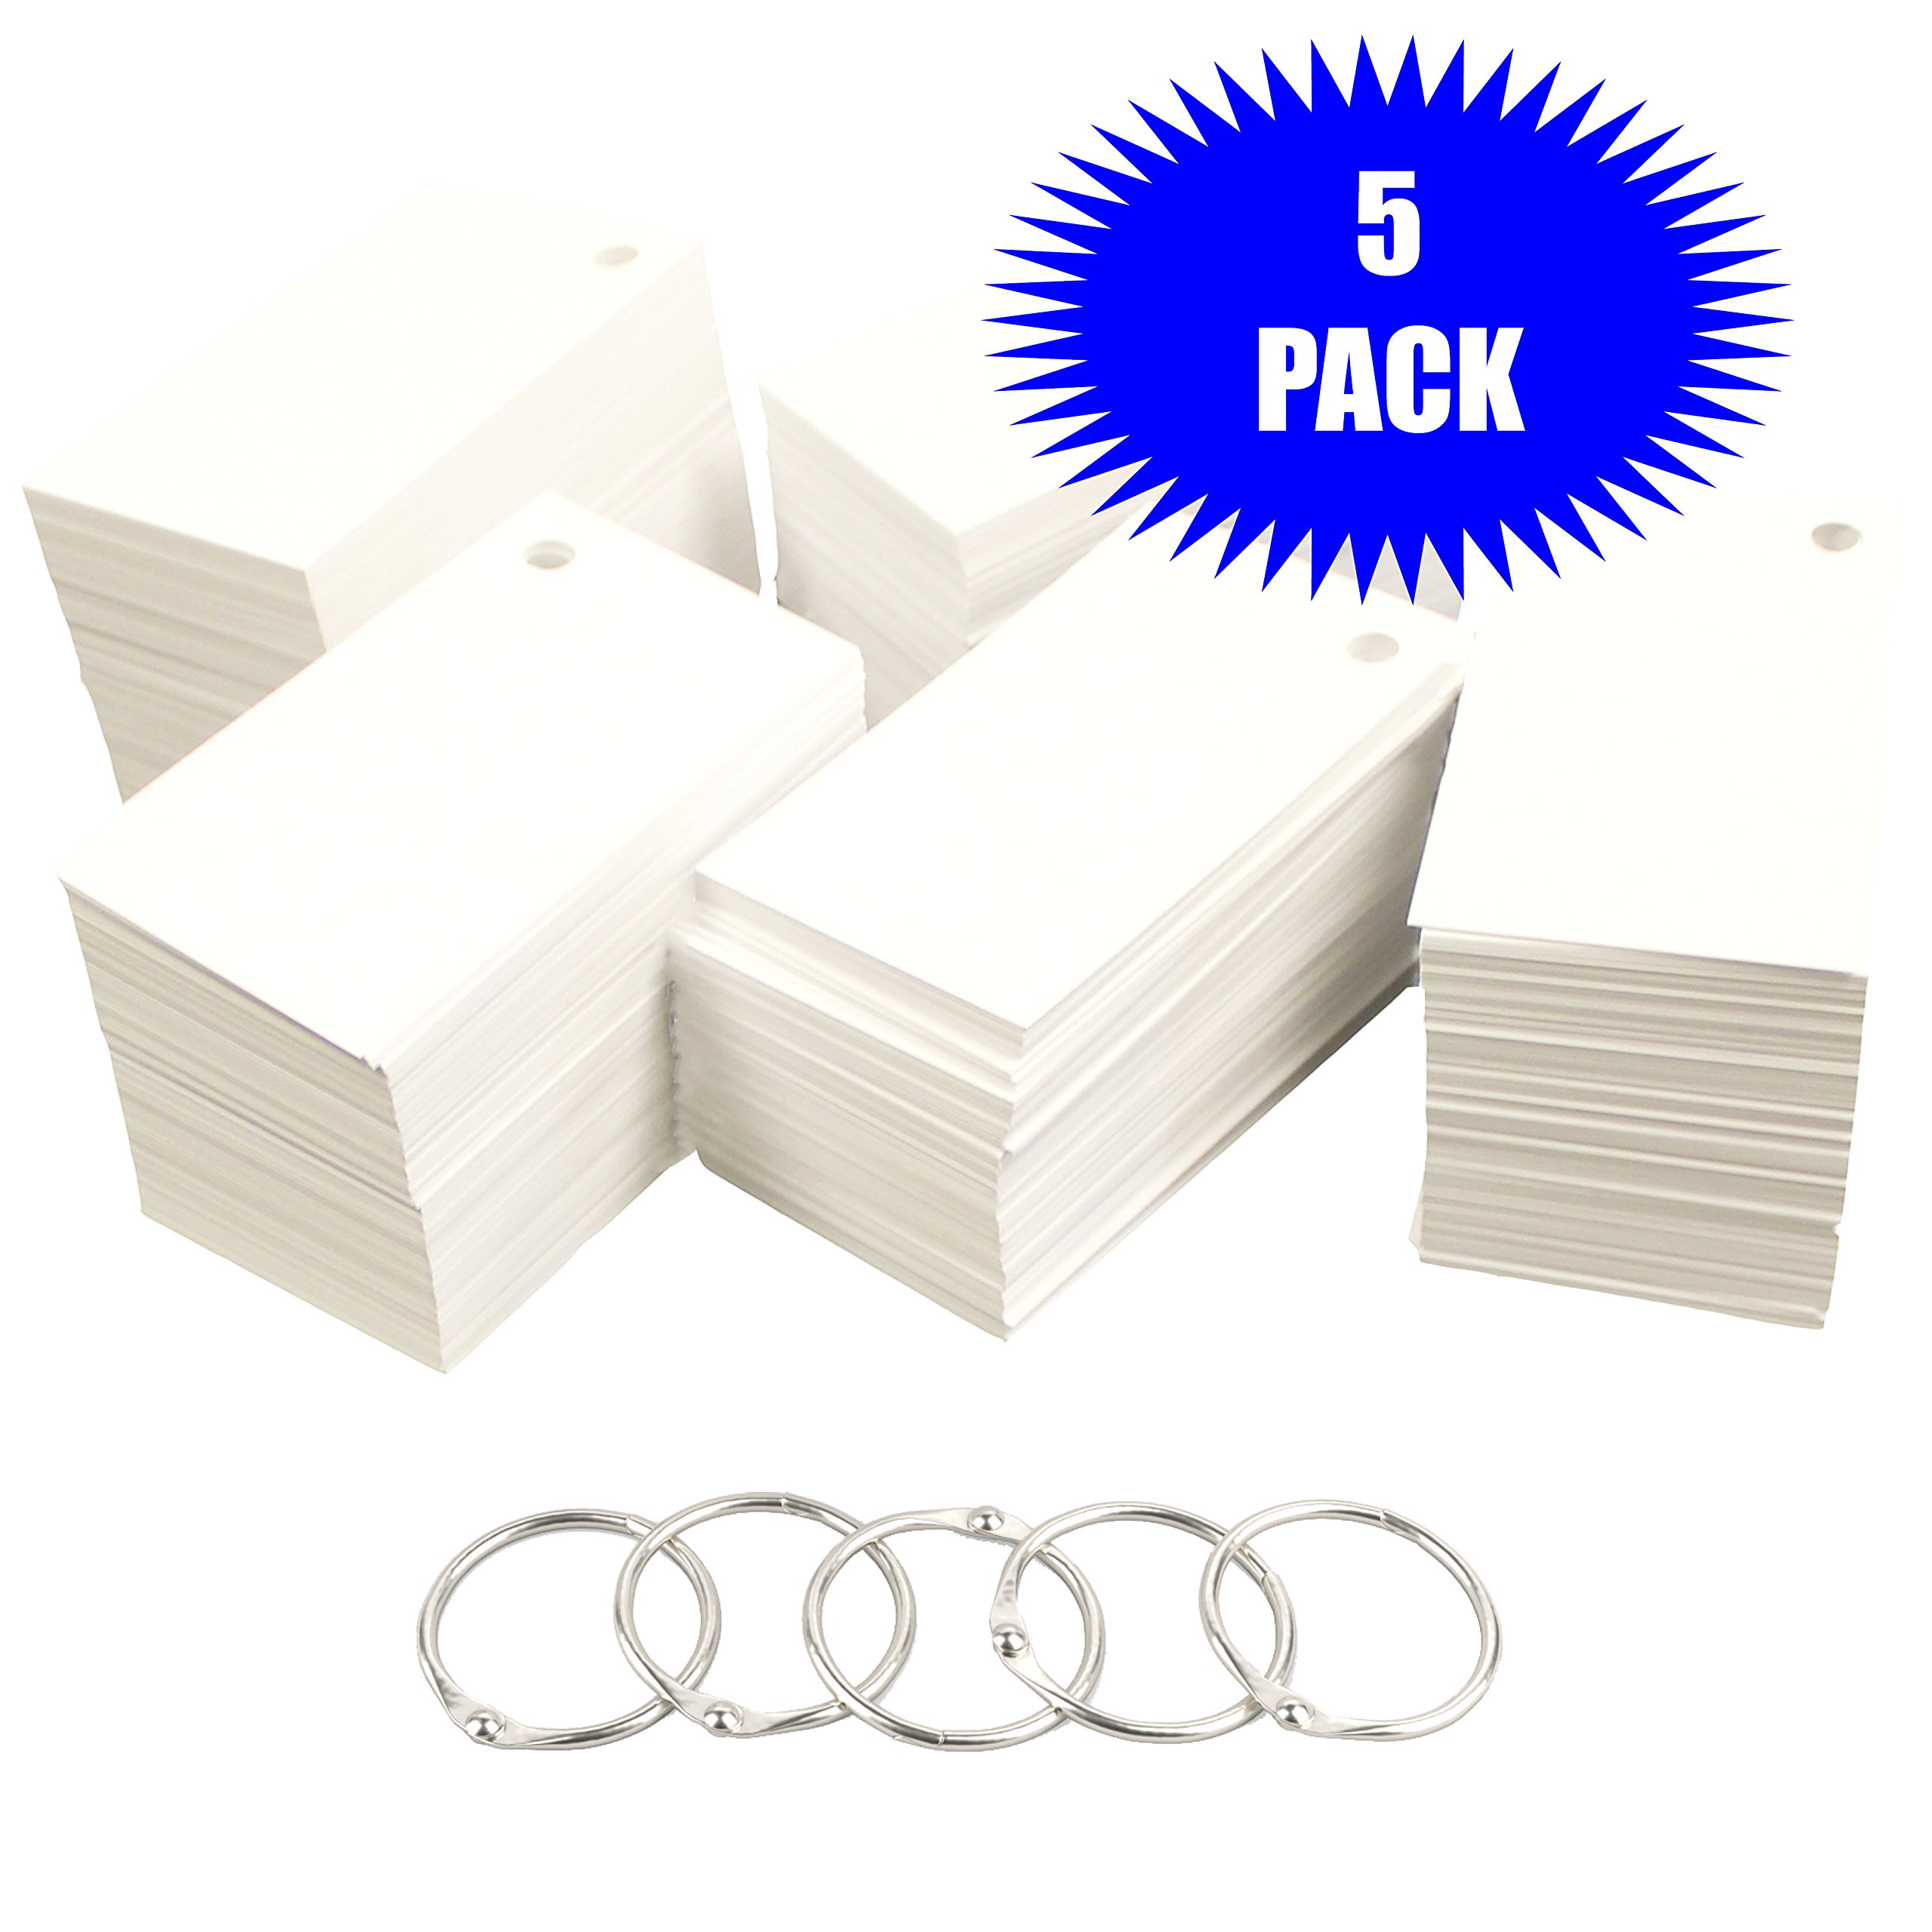 Debra Dale Designs 1,100 Small Blank Study Flash Cards - 110# White Smooth Index - Single Hole Punched with 5 Metal Binder Rings - 2'' x 3-1/2''. Best For Learning Languages (Punched 5 Pack)